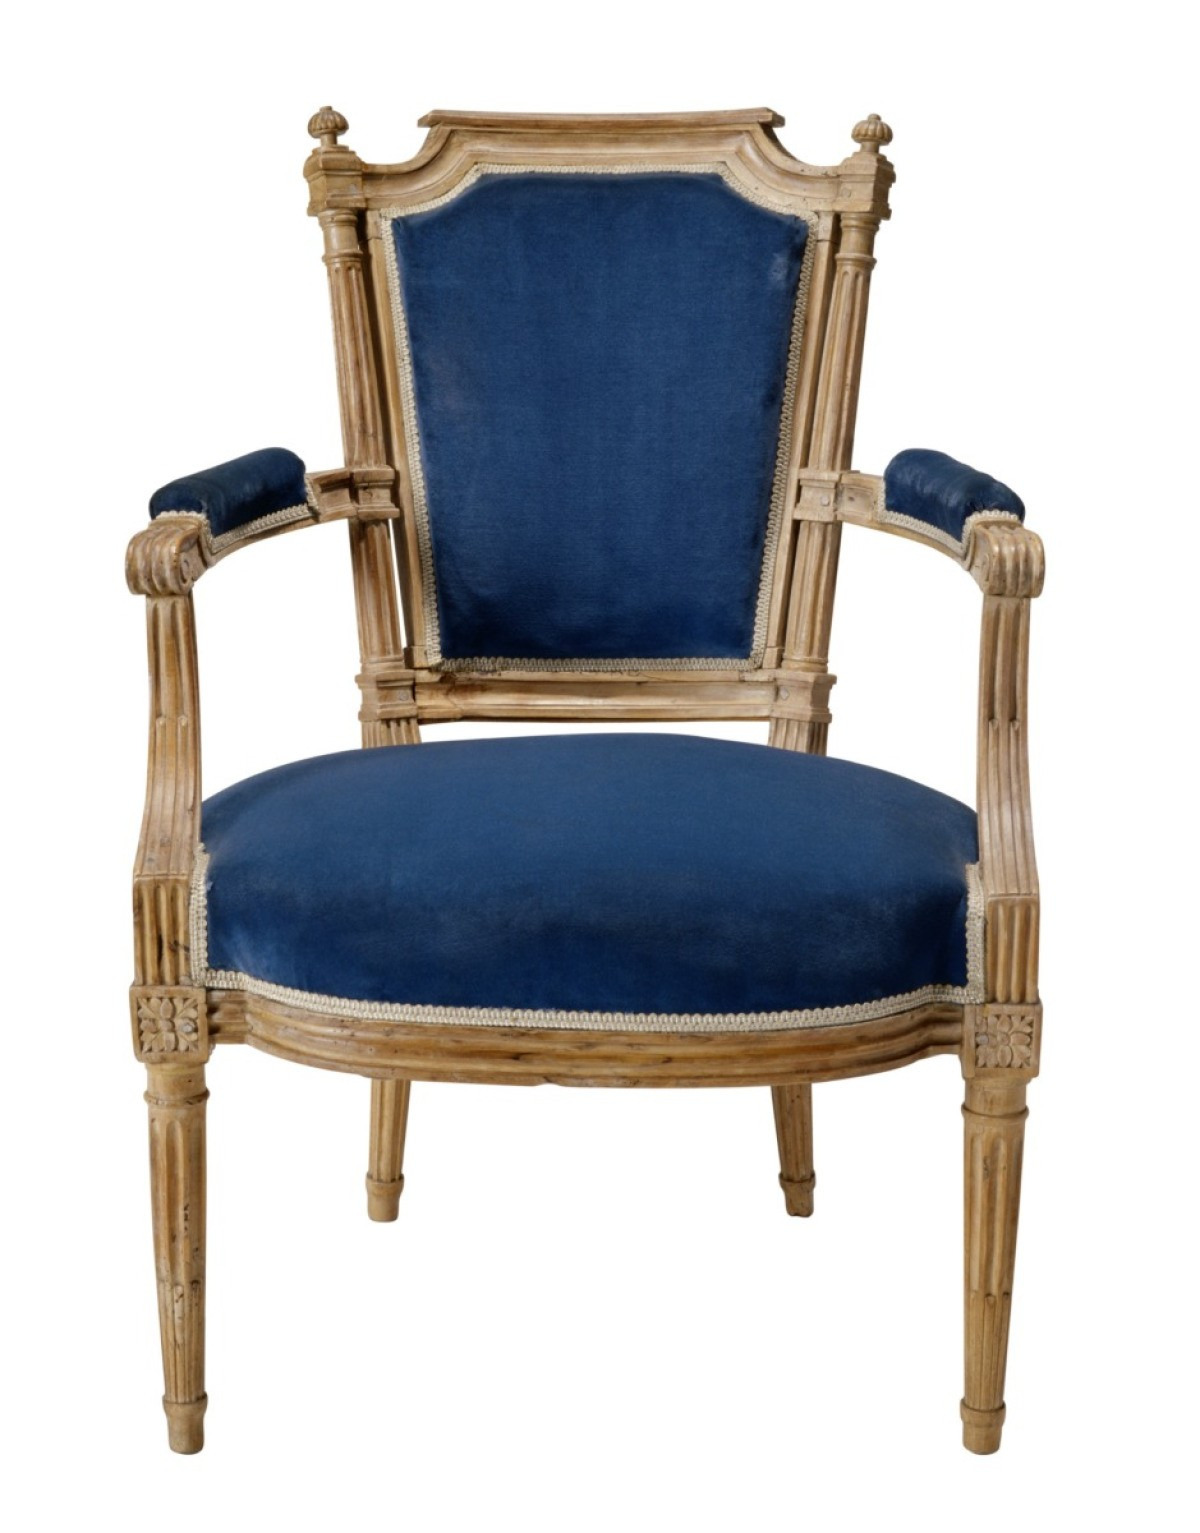 Where to Sell Antique Furniture New Selling Antique Furniture